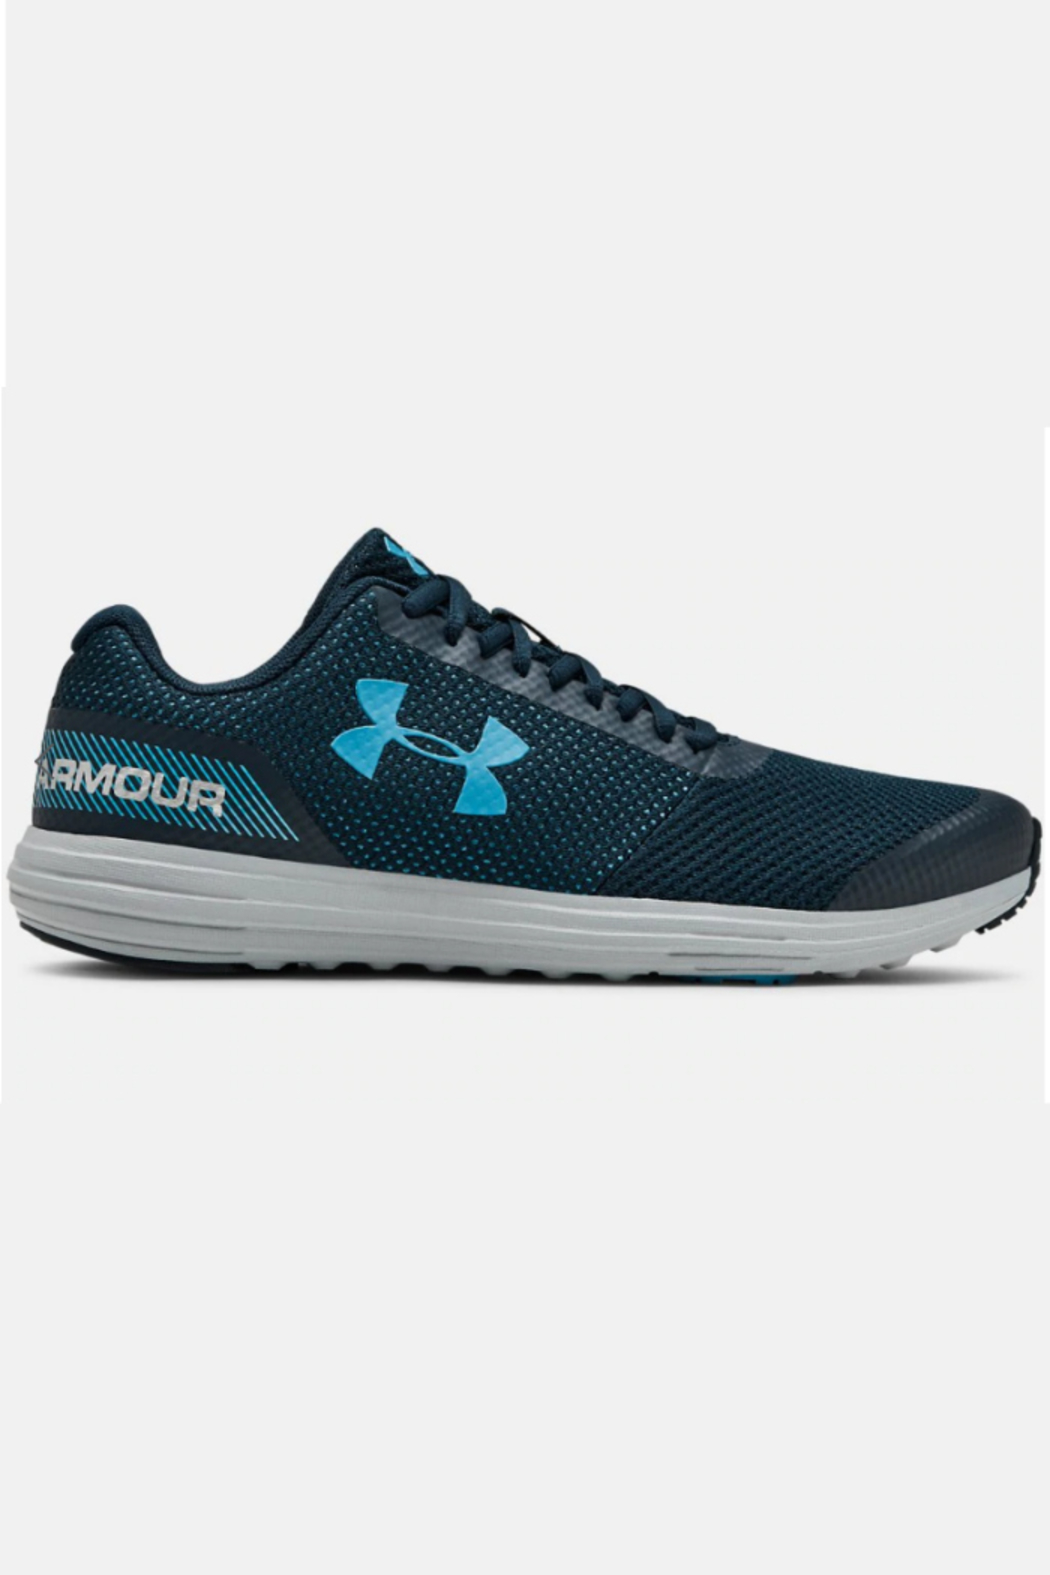 Under Armour UNDER ARMOUR BOYS SURGE - Front Cropped Image